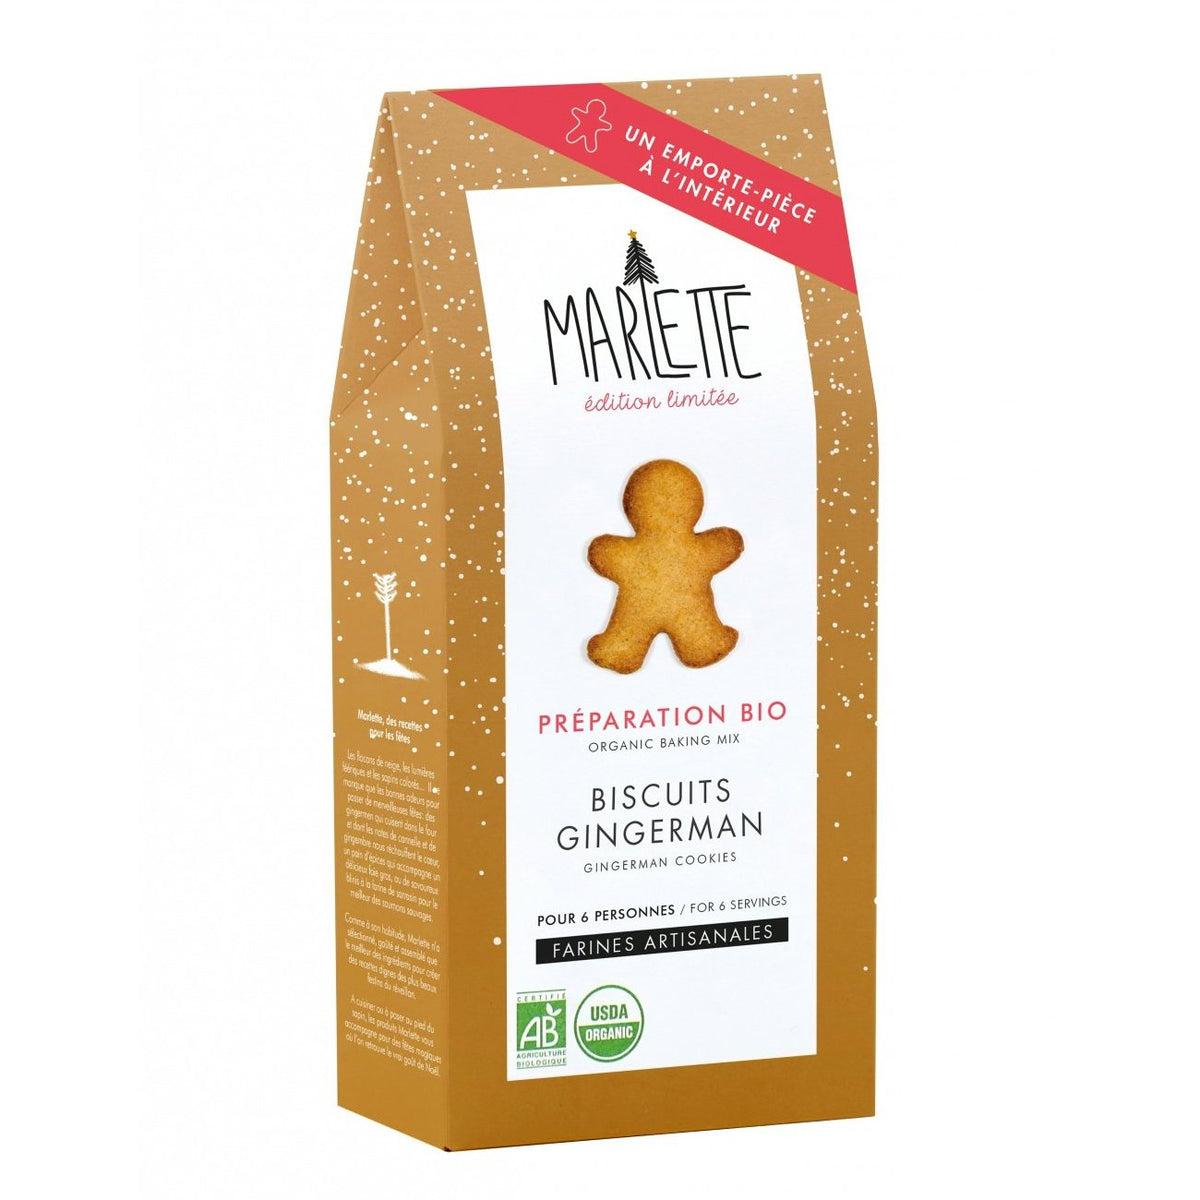 Gingerman cookies - organic baking mix + cookie cutter